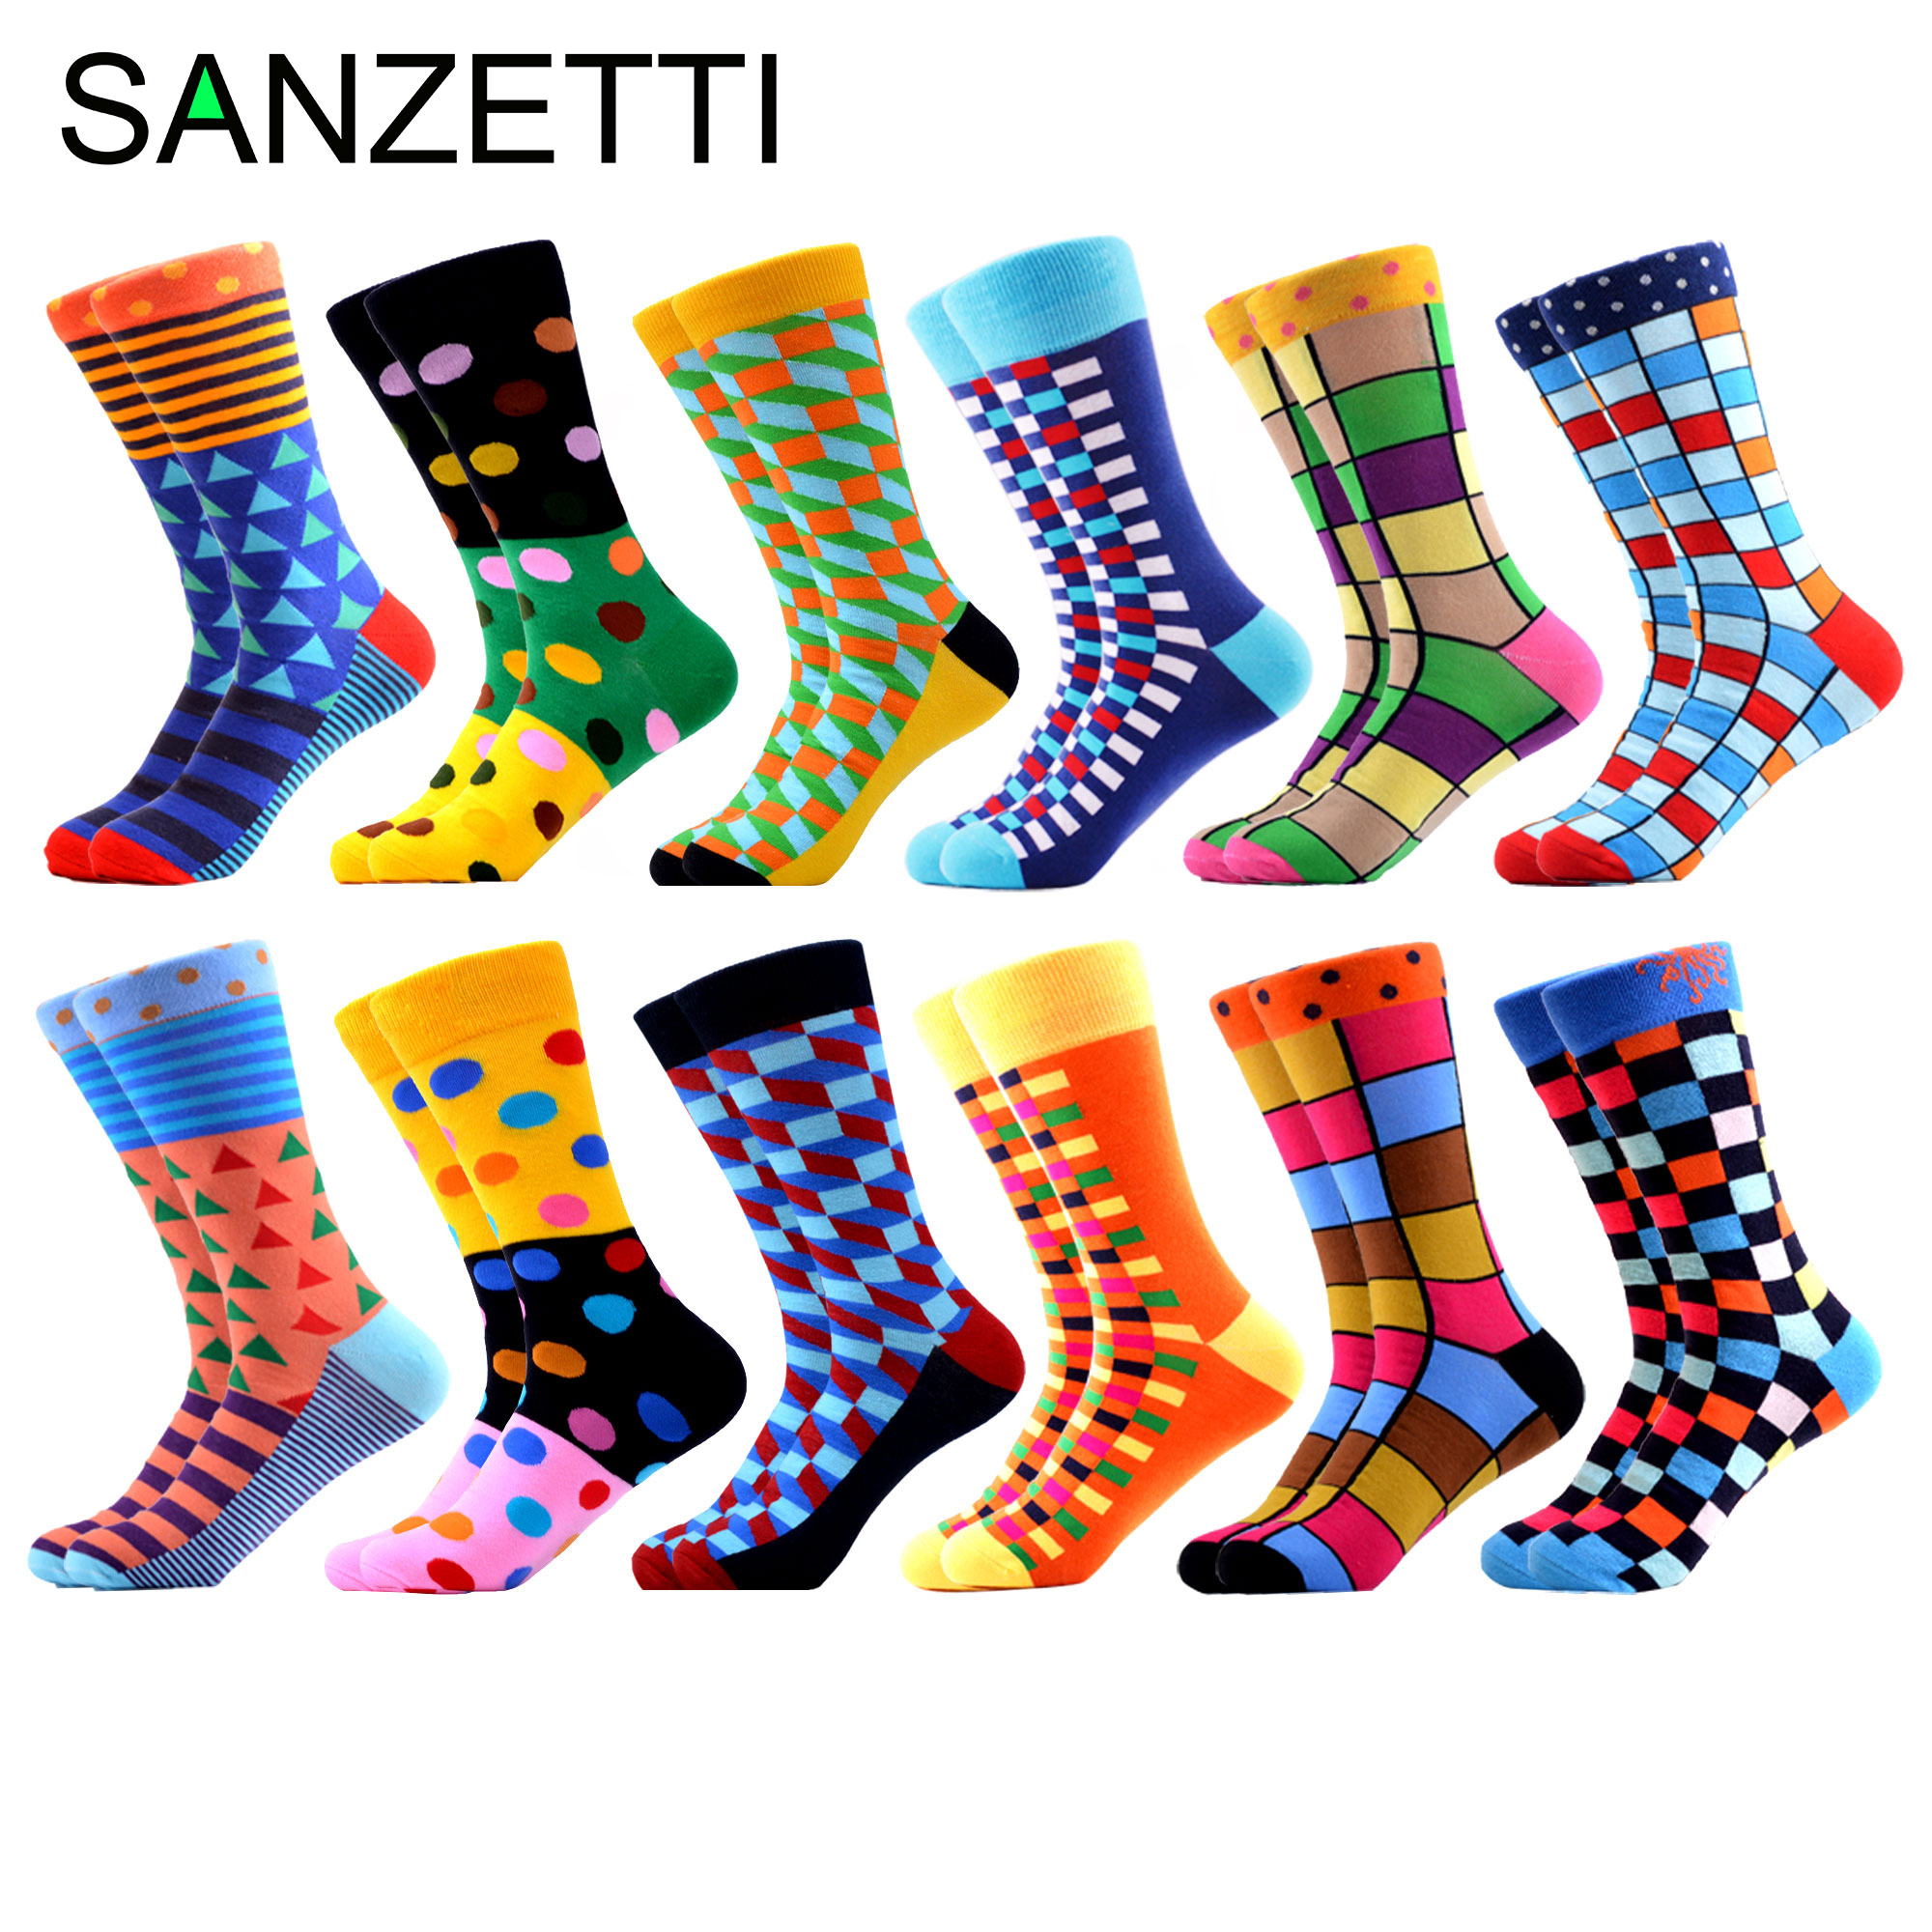 SANZETTI Men's Socks Hip Hop High Colorful Combed Cotton Happy Novelty Quality Skateboard Plaid Geometric Funny Socks For Gifts